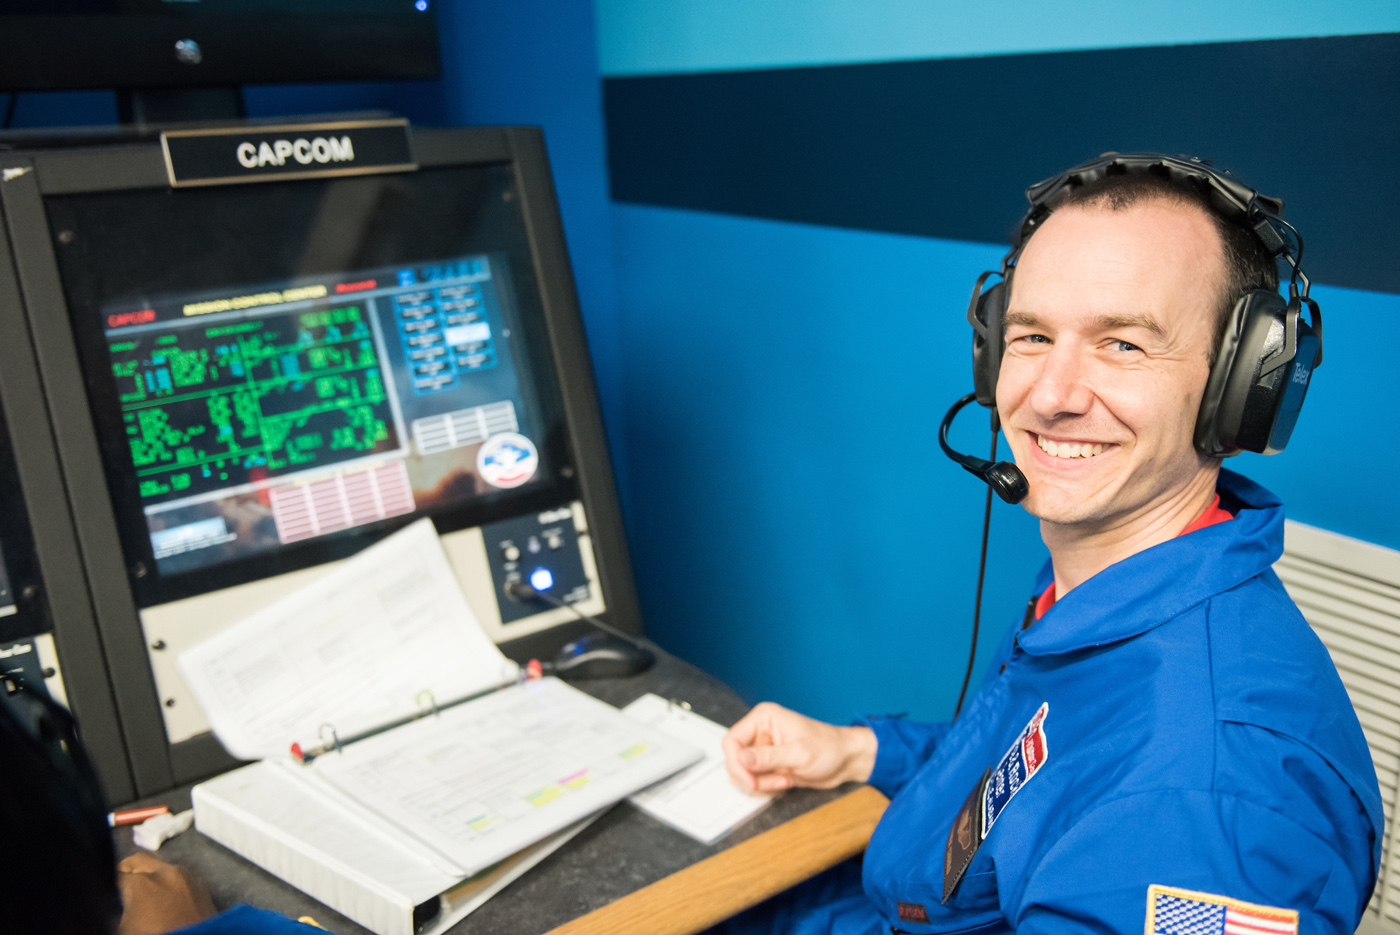 Cudzilo on one of his missions during which his job was CapCom or Capsule Communications, part of Mission Control. Provided photo